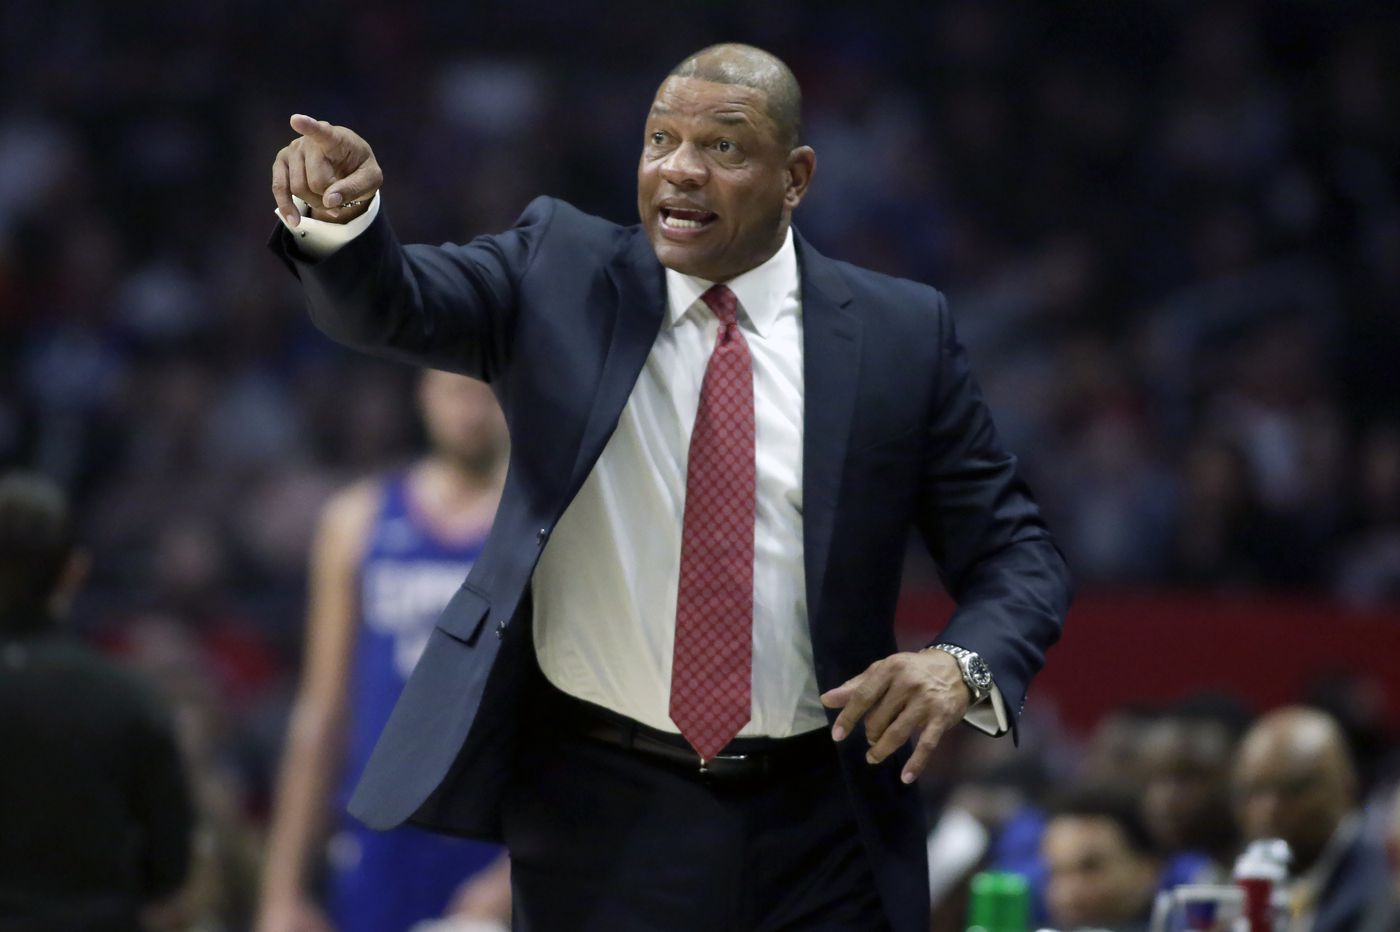 Former NBA coach Mike Fratello always knew that new Sixers coach Doc Rivers could have a future in coaching